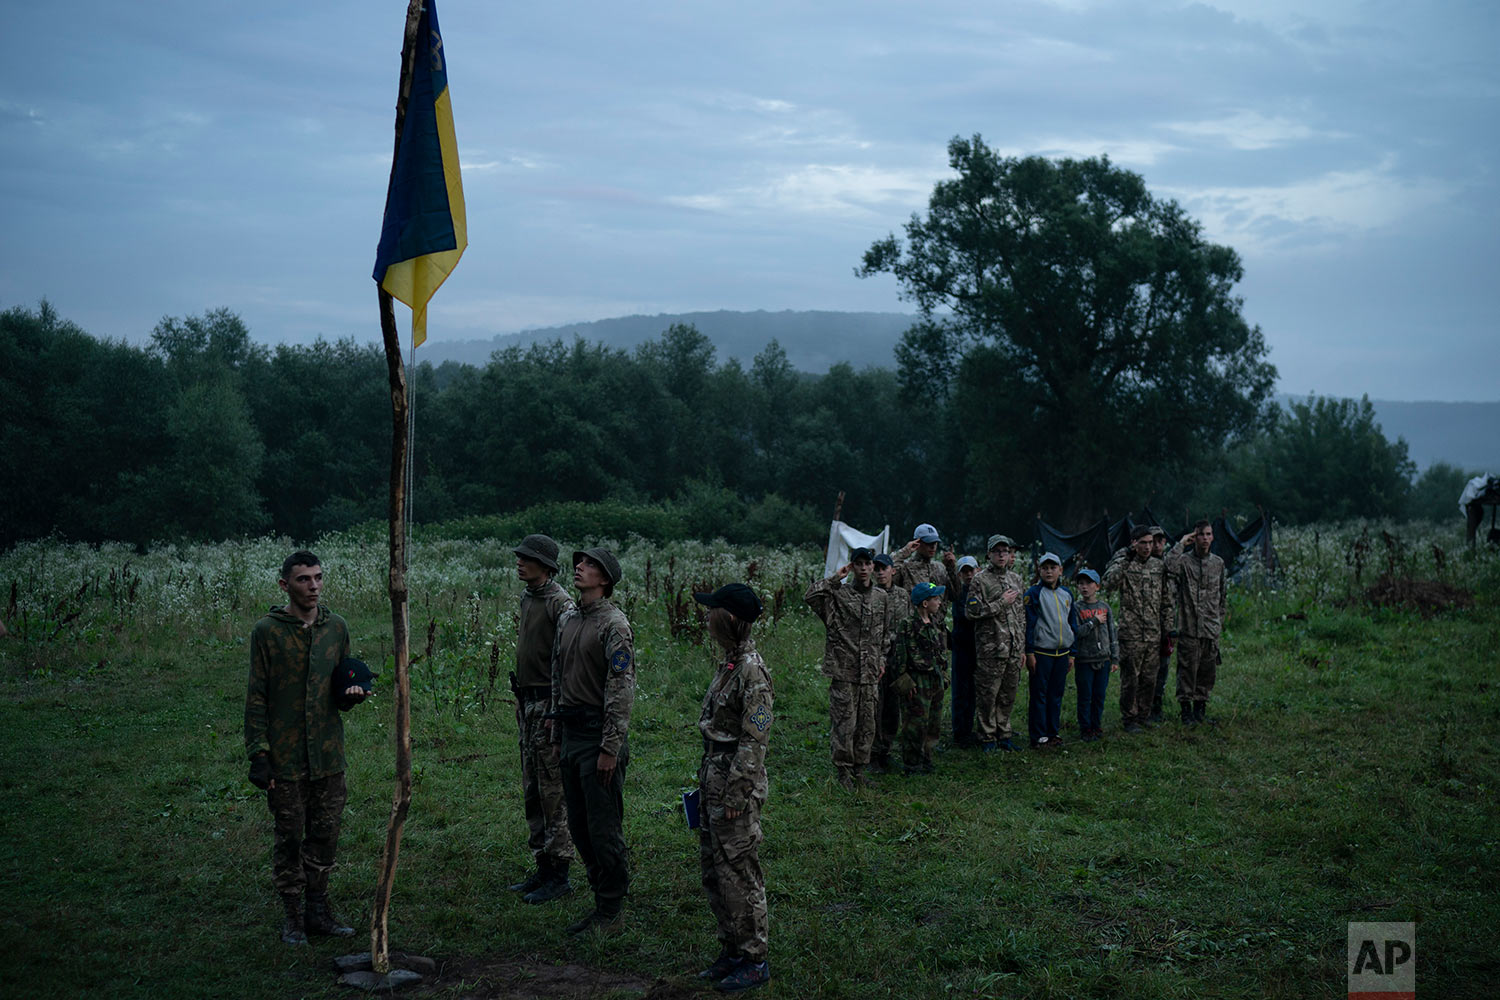 "Young participants and instructors of the ""Temper of will"" summer camp, organized by the nationalist Svoboda party, stand in formation as they sing the national anthemn on July 28, 2018, in a village near Ternopil, Ukraine. Earlier this year, the Ministry of Youth and Sports earmarked 4 million hryvnias (about $150,000) to fund some of the youth camps among the dozens built by the nationalists. (AP Photo/Felipe Dana)"